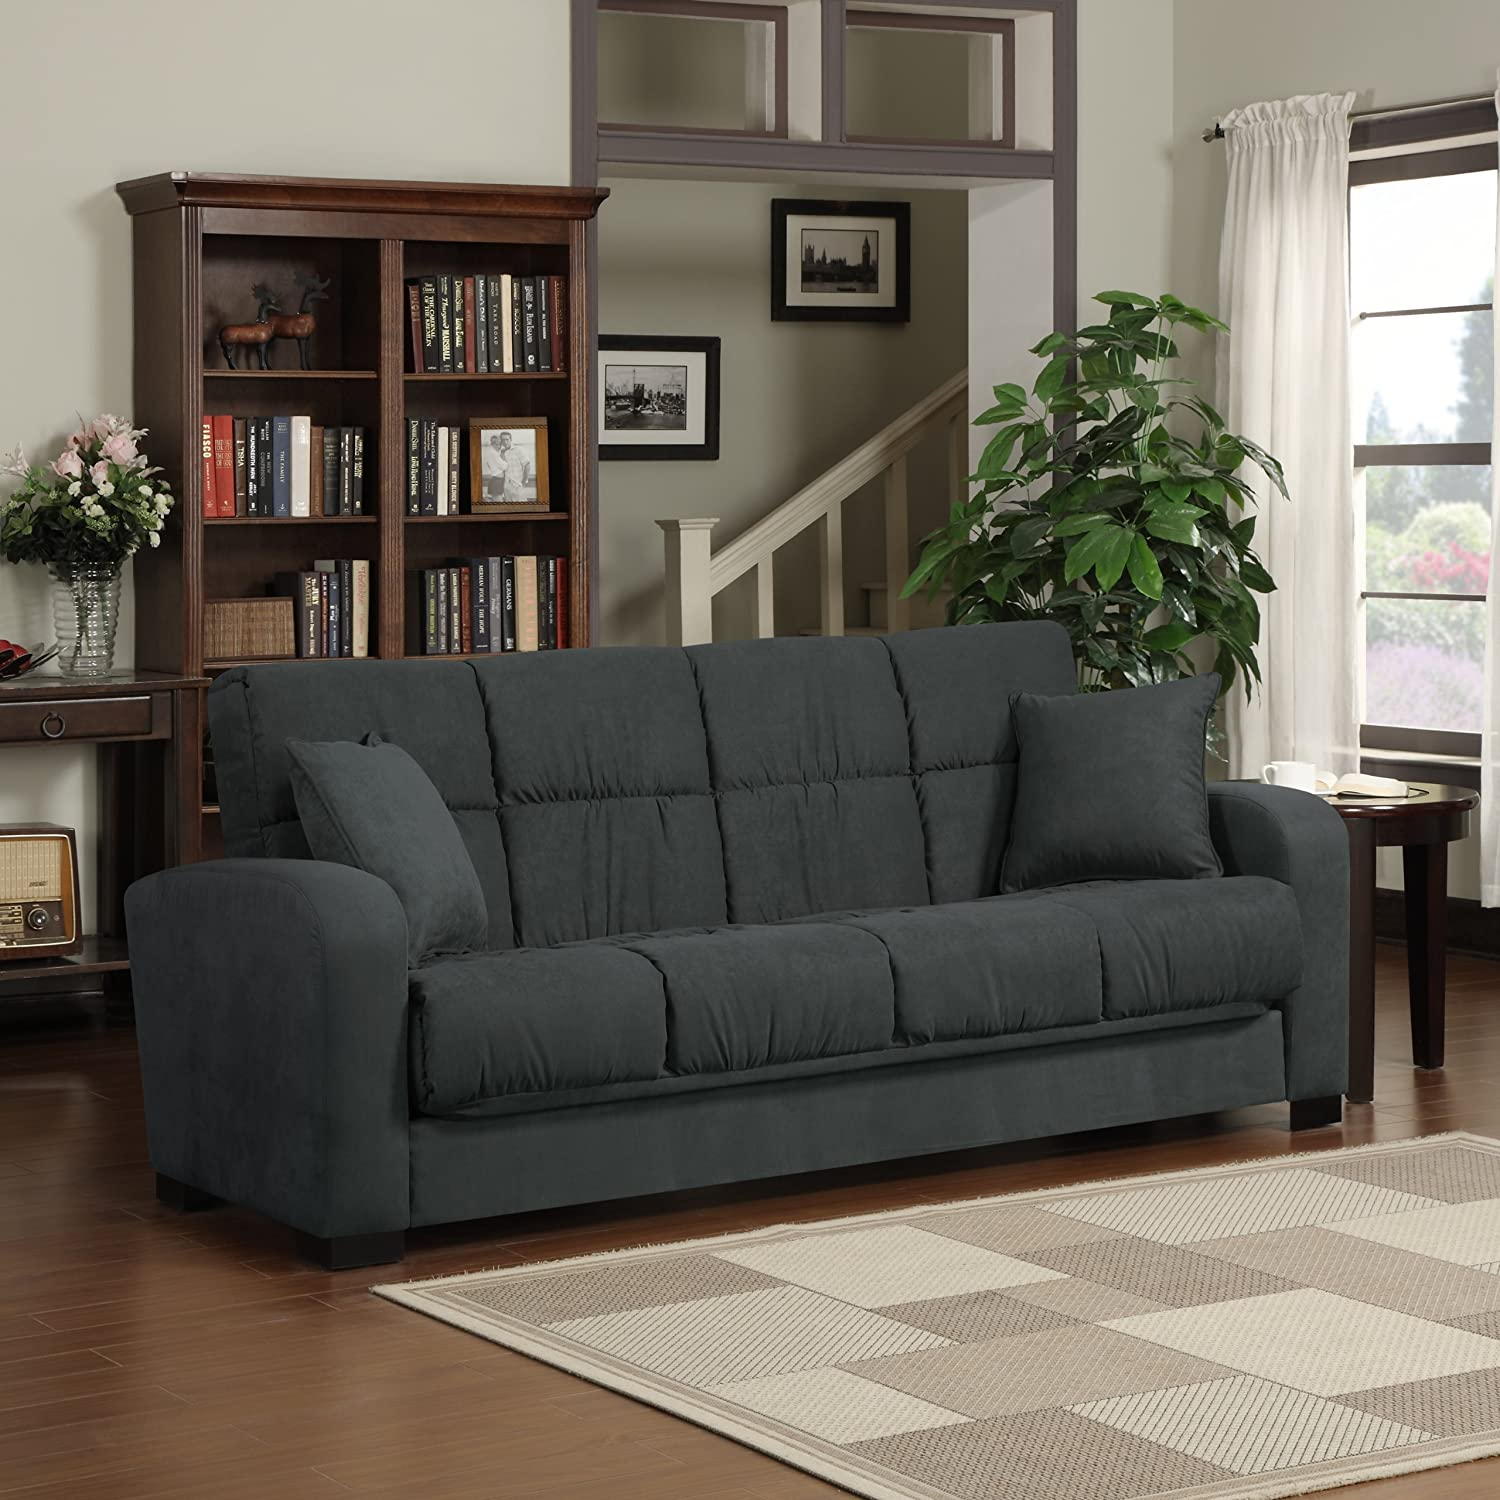 Amazon.com: Handy Living Damen Convert A Couch In Gray Microfiber: Kitchen  U0026 Dining